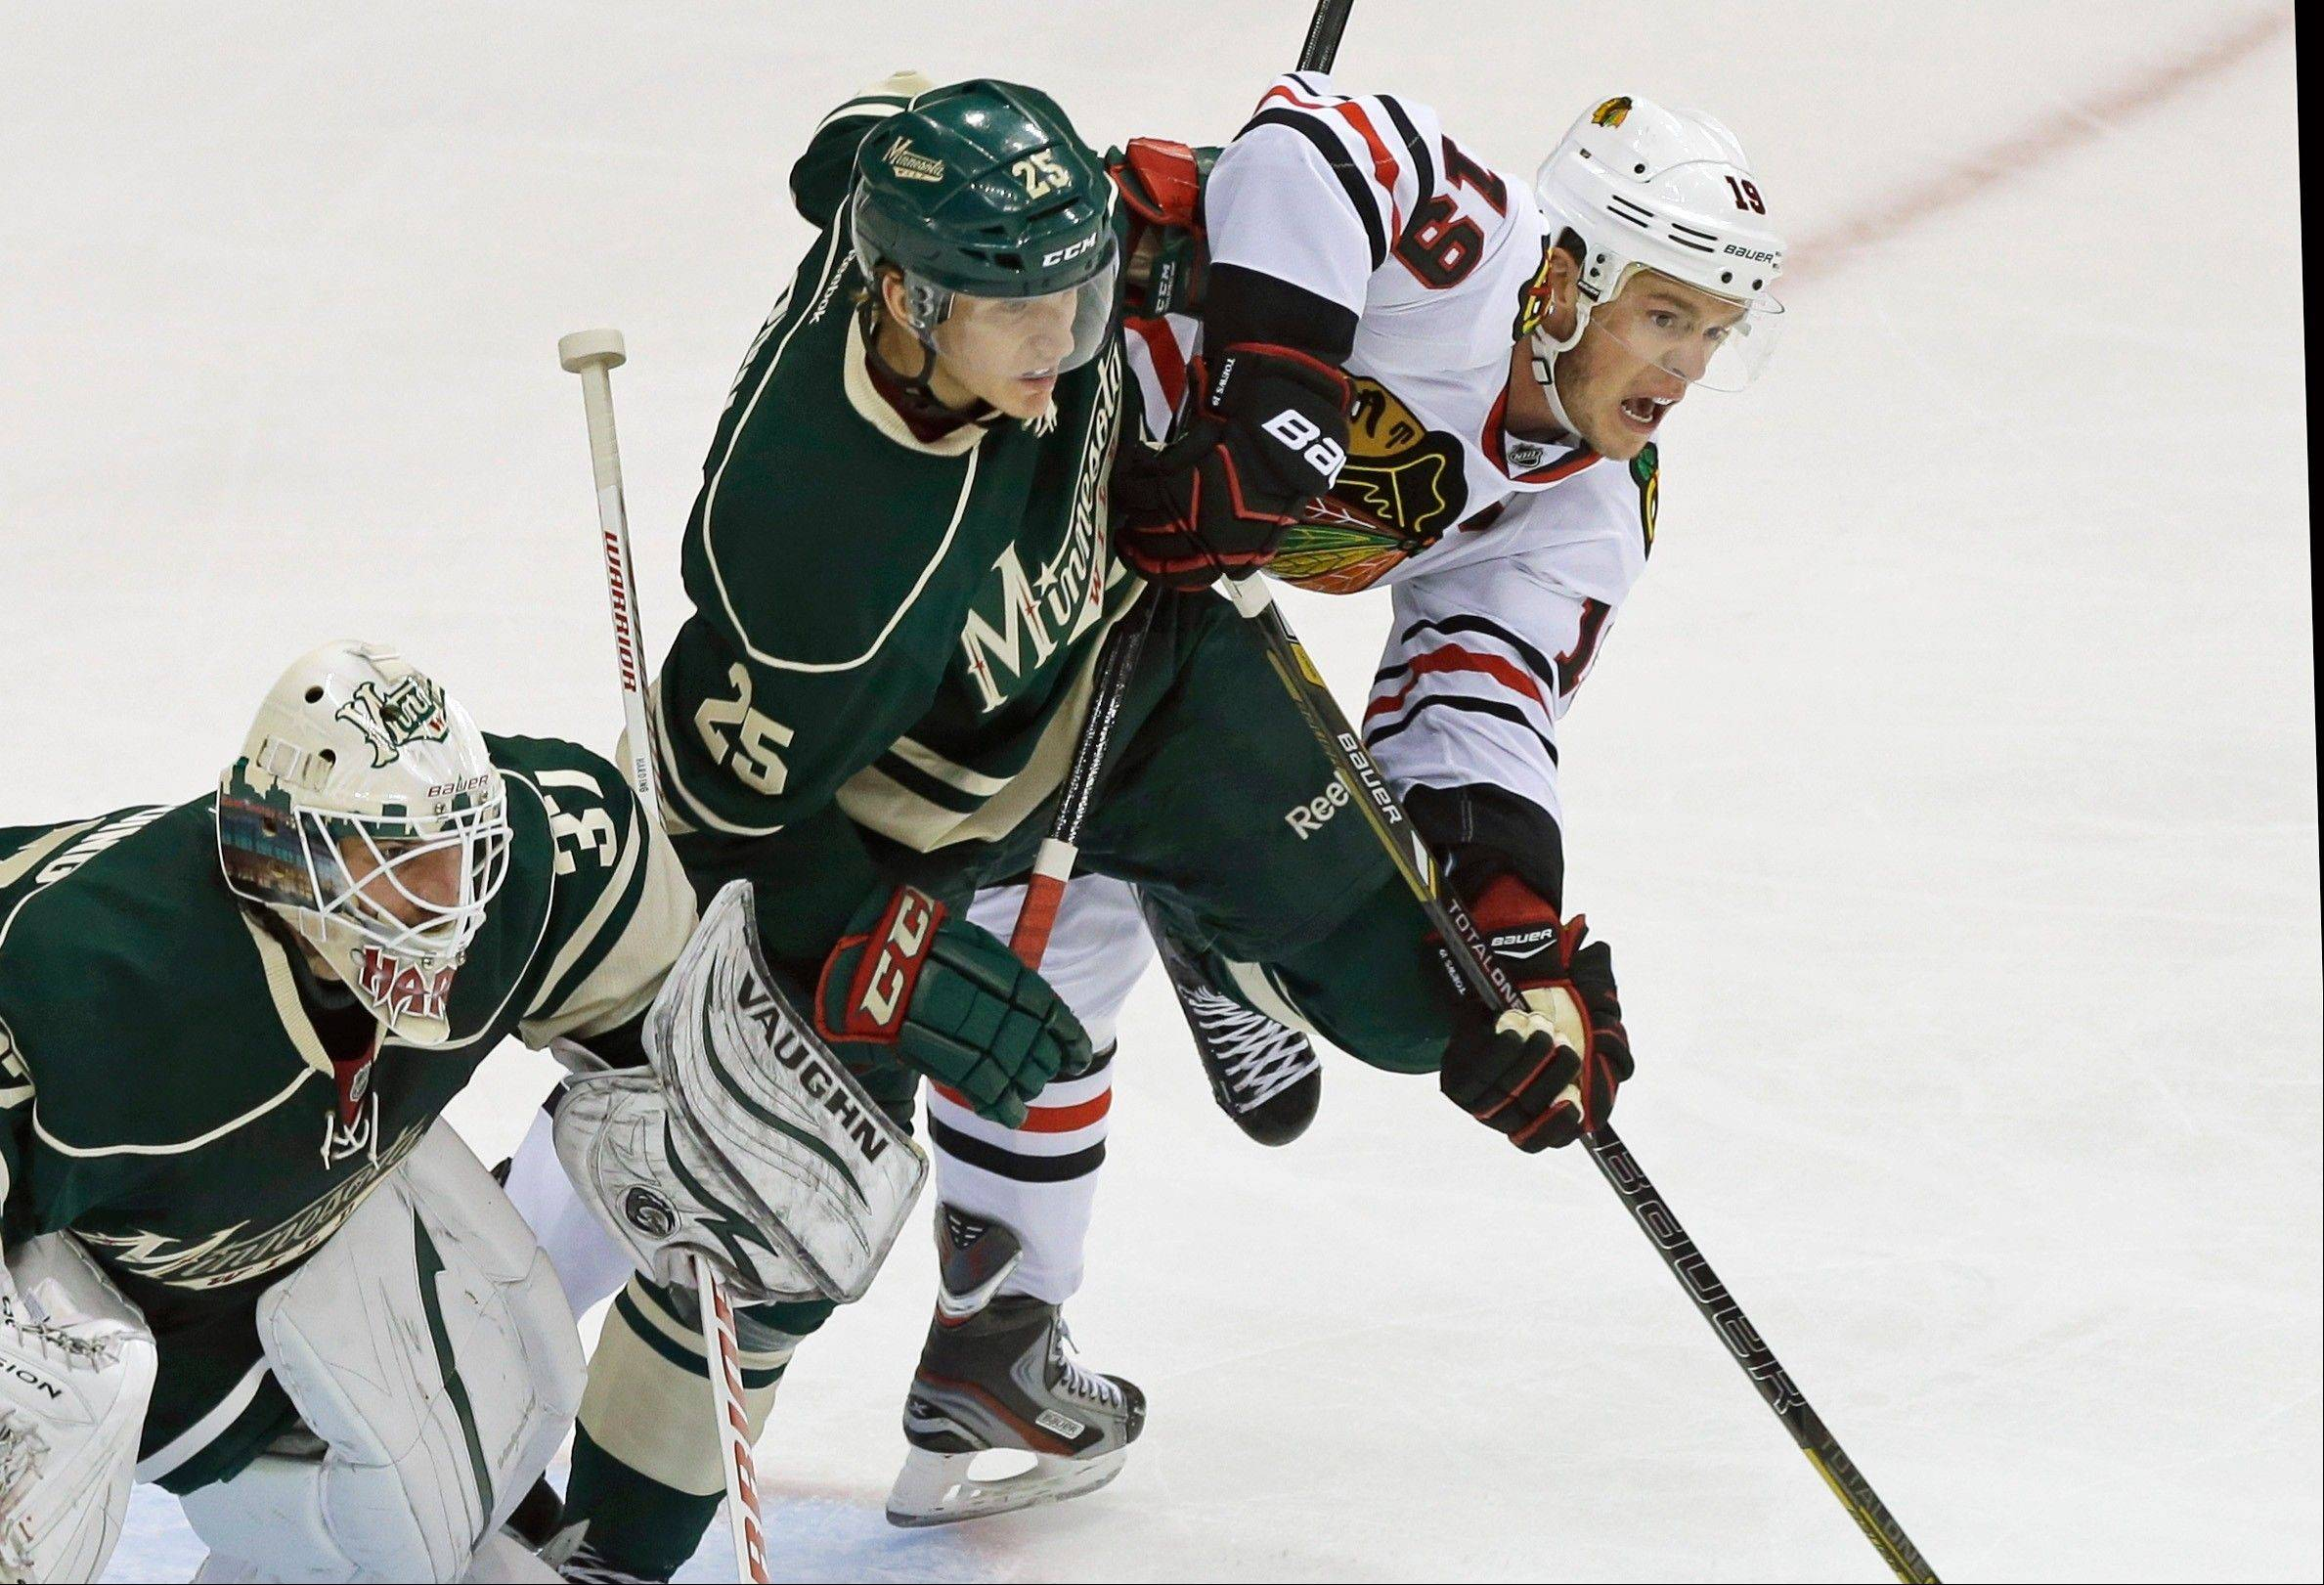 Minnesota's Jonas Brodin, center, keeps the Blackhawks' Jonathan Toews, right, in check as he helps goalie Josh Harding defend the net in the first period of Game 4 of an NHL hockey Stanley Cup playoff series, Tuesday, May 7, 2013 in St. Paul, Minn.